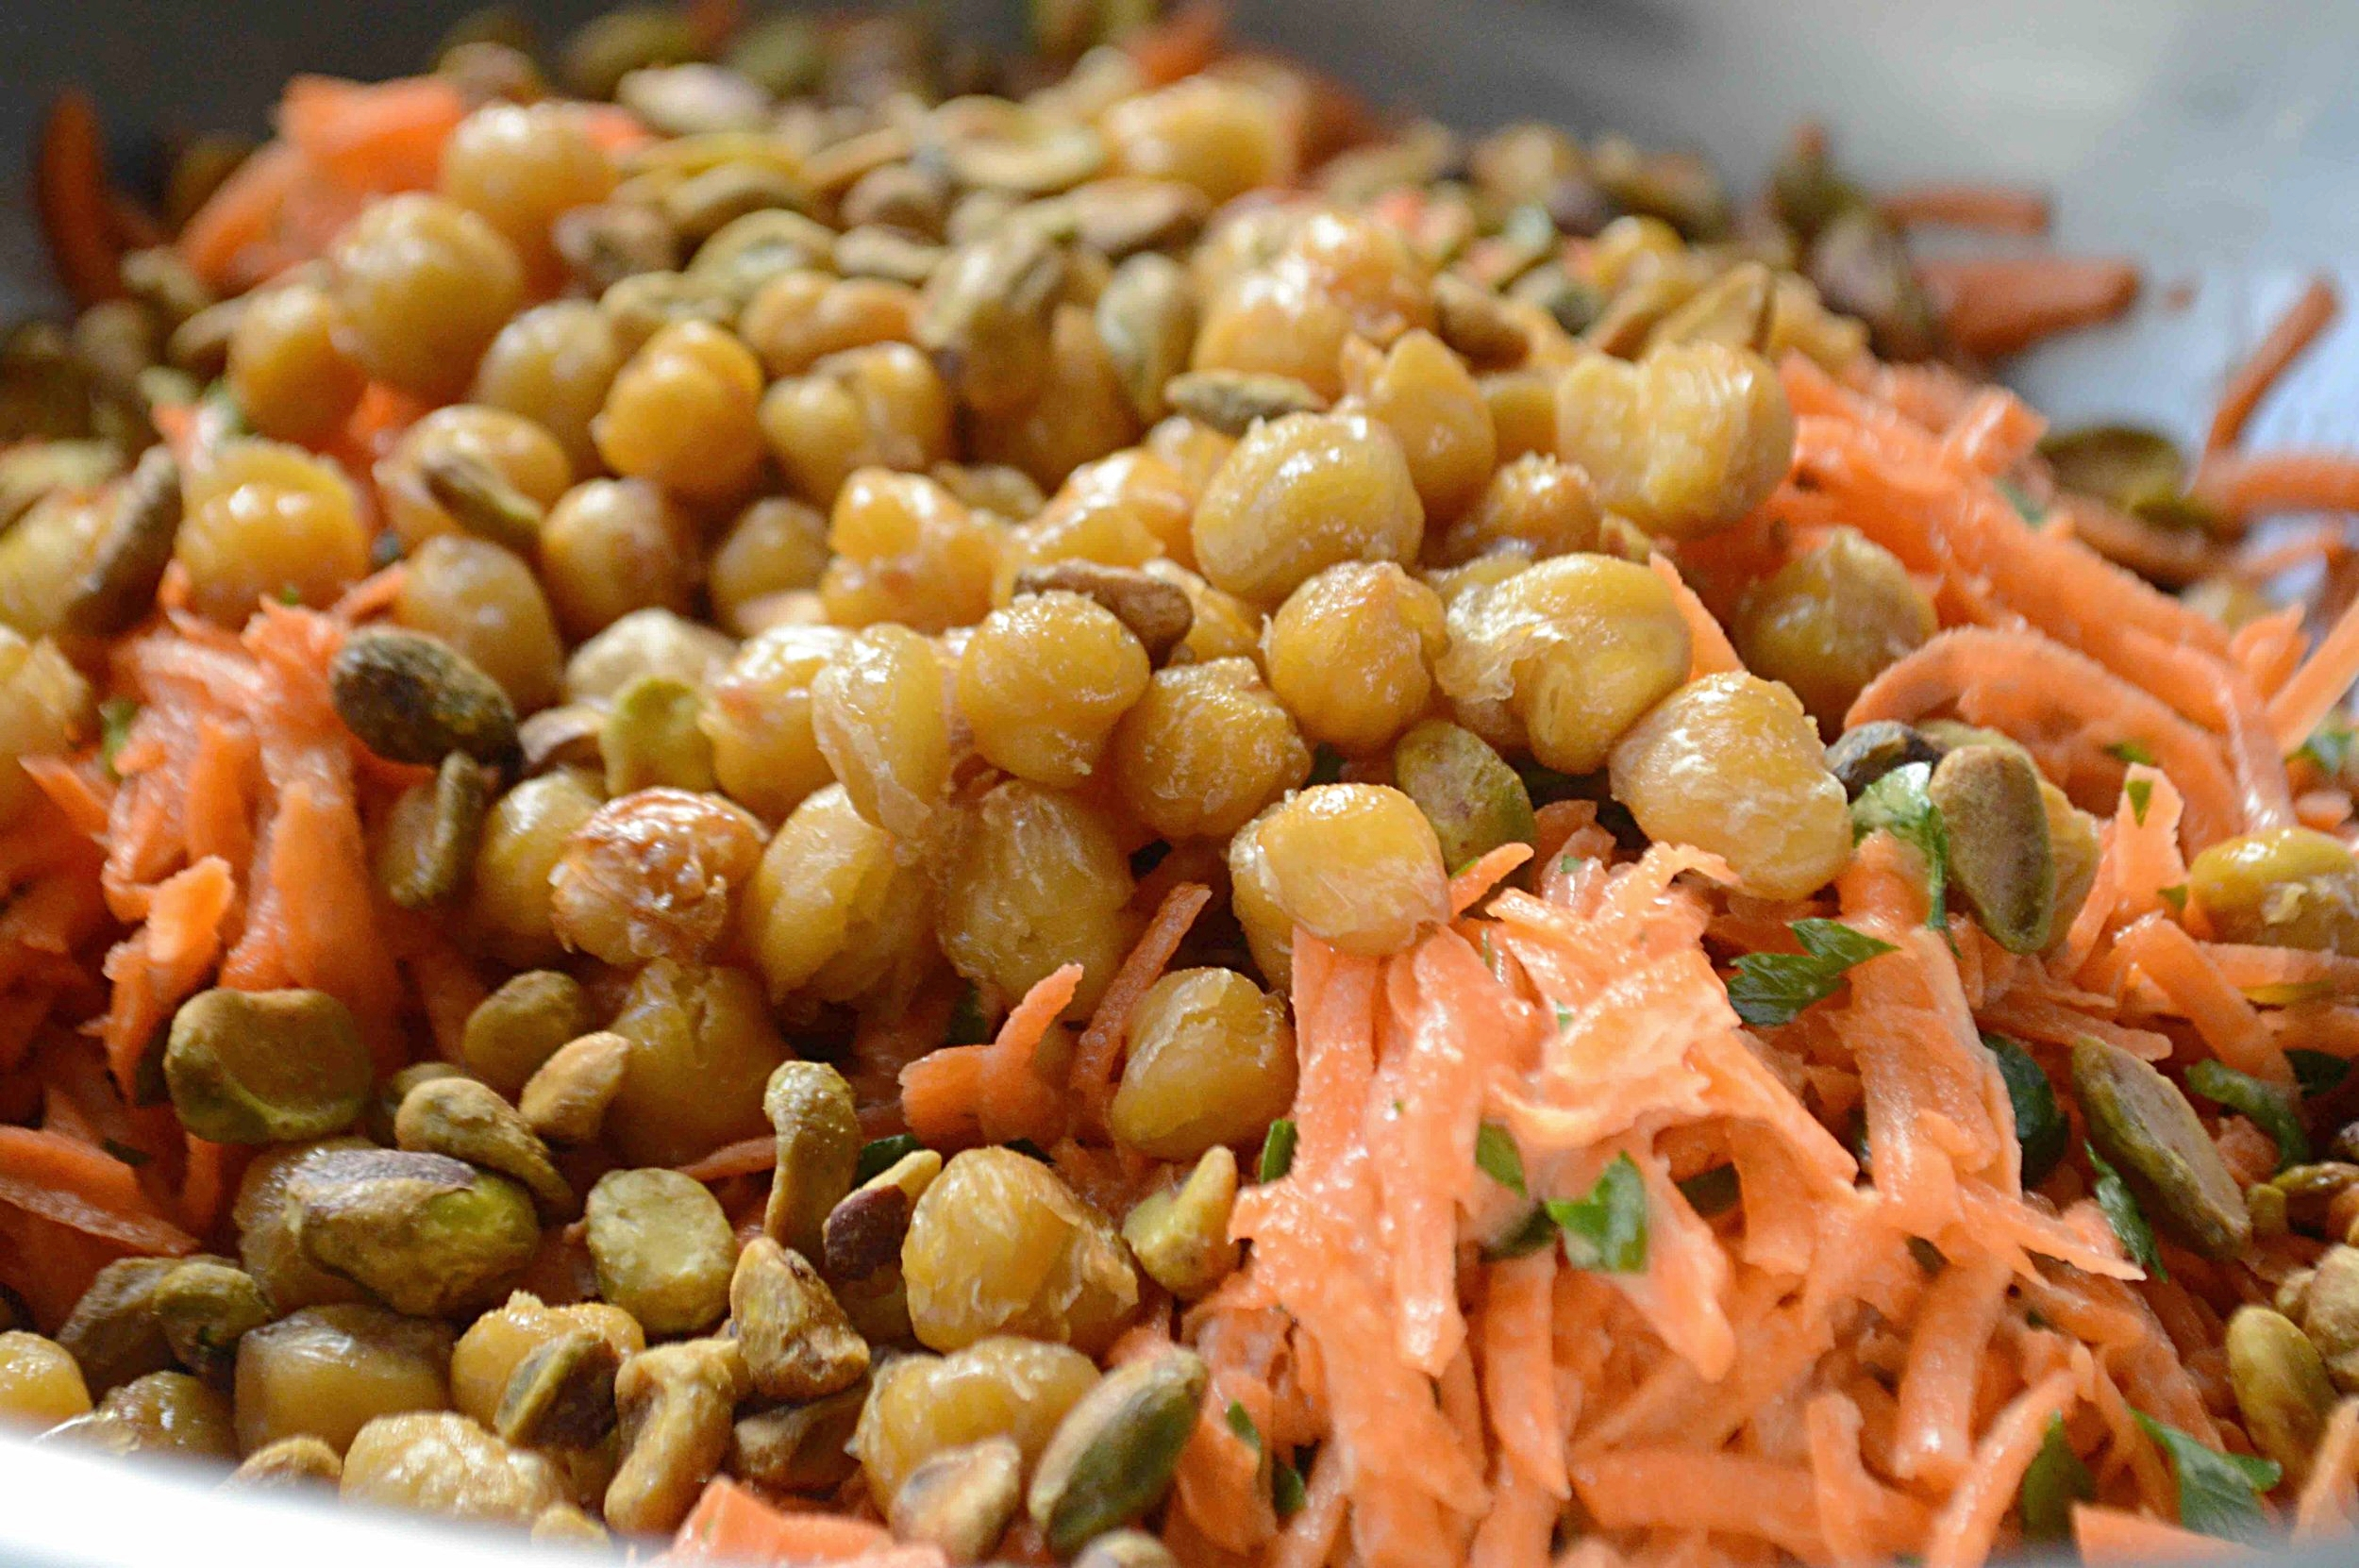 Smitten Kitchen's Every Day Carrot Salad with Tahini, Crisped Chickpeas and Salted Pistachios